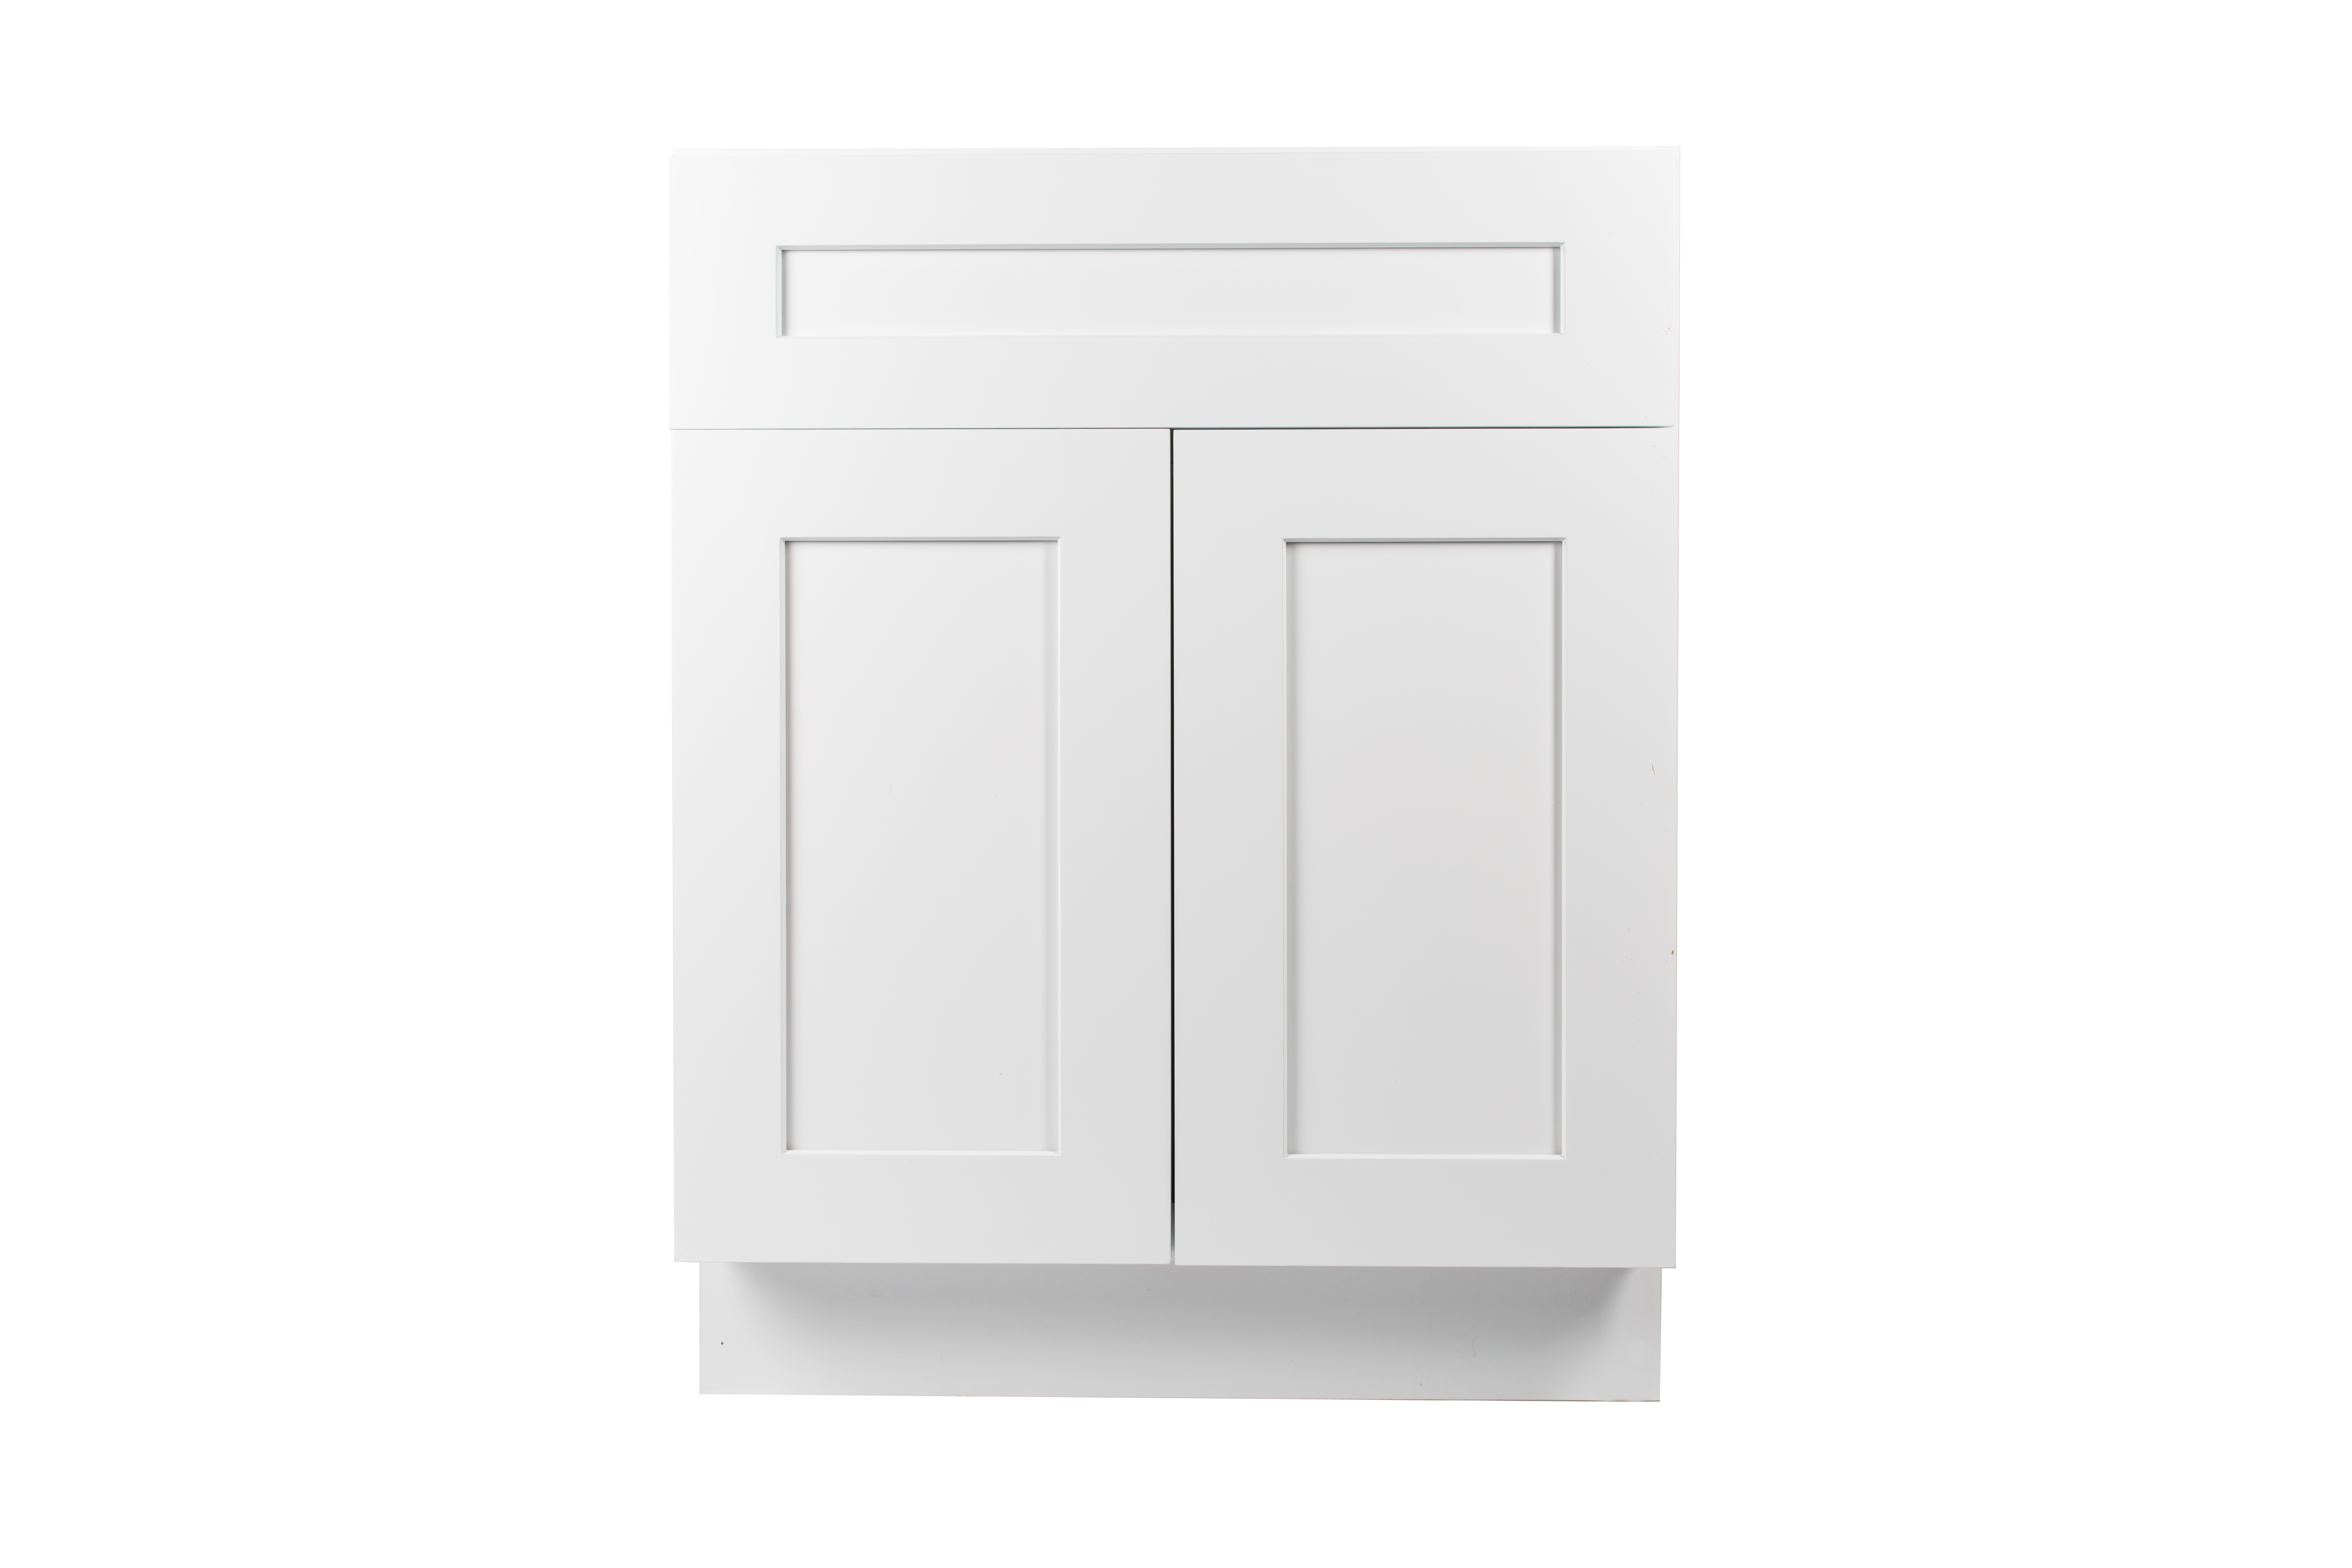 Ready to Assemble 24Wx34.5Hx21D in. Shaker  VANITY SINK BASE CABINET-1-FAKE DRAWER ,2 DOORS in White